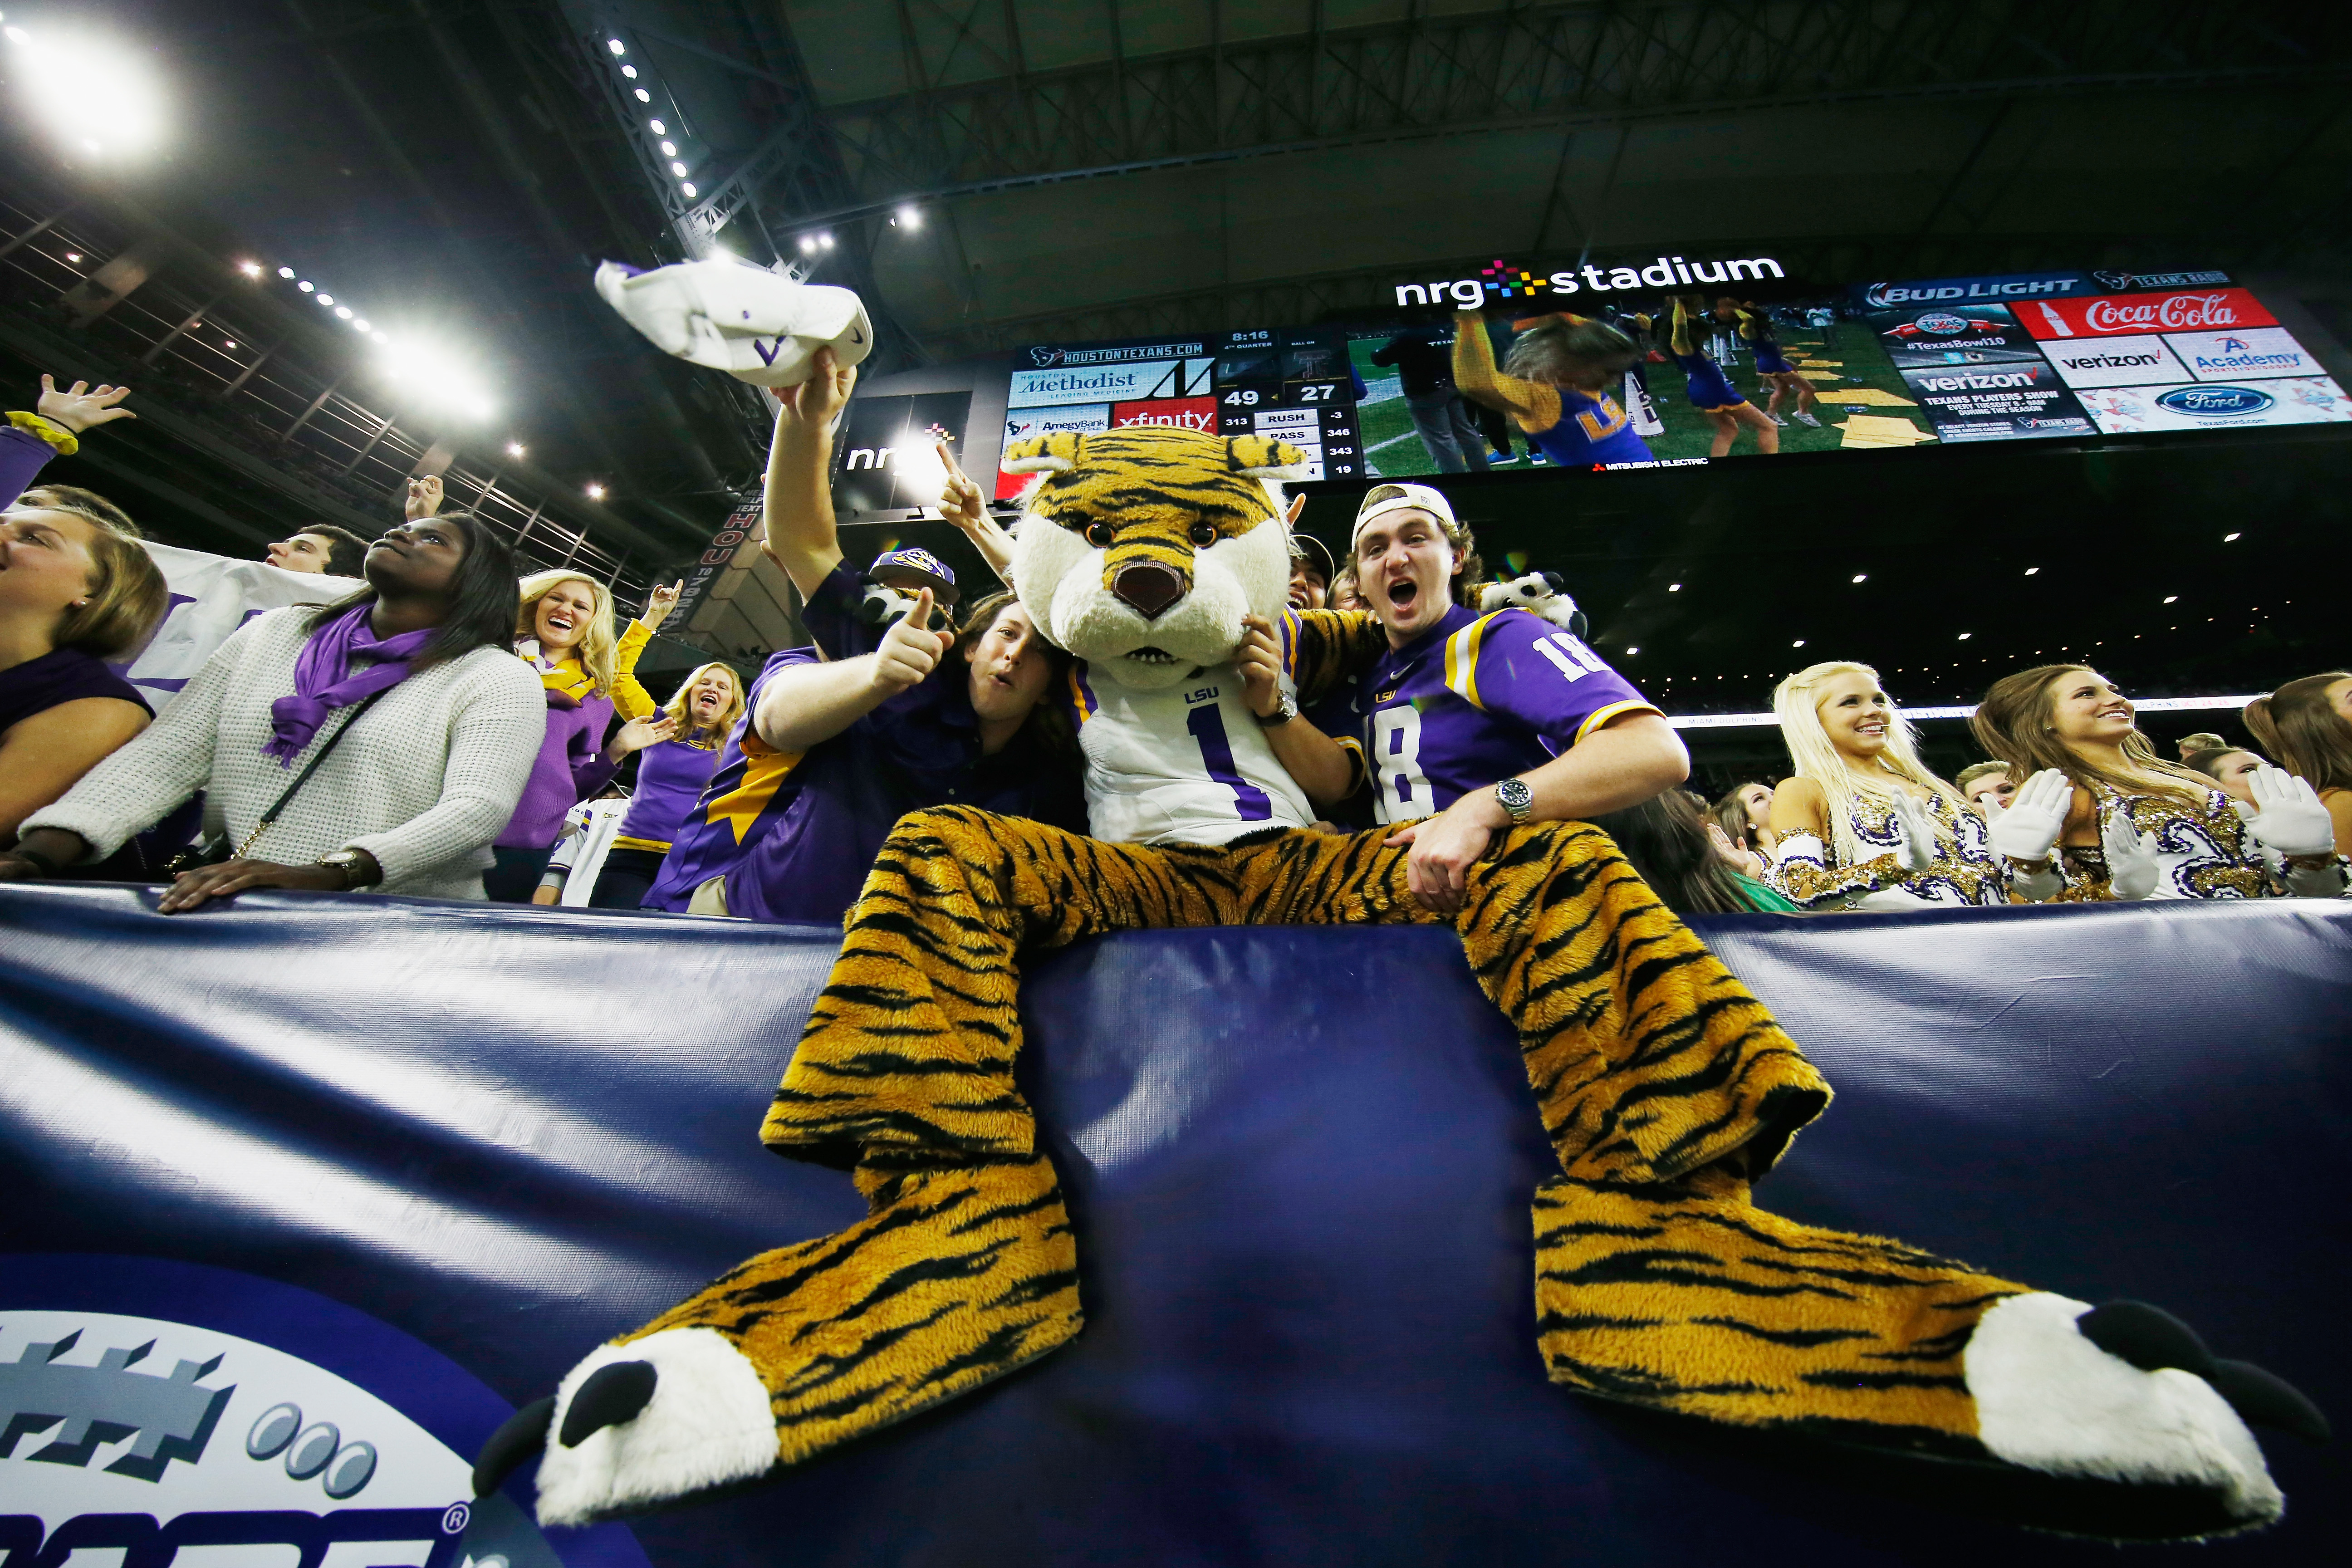 When LSU football loses, Louisiana judges give harsher sentences, mostly to black juveniles